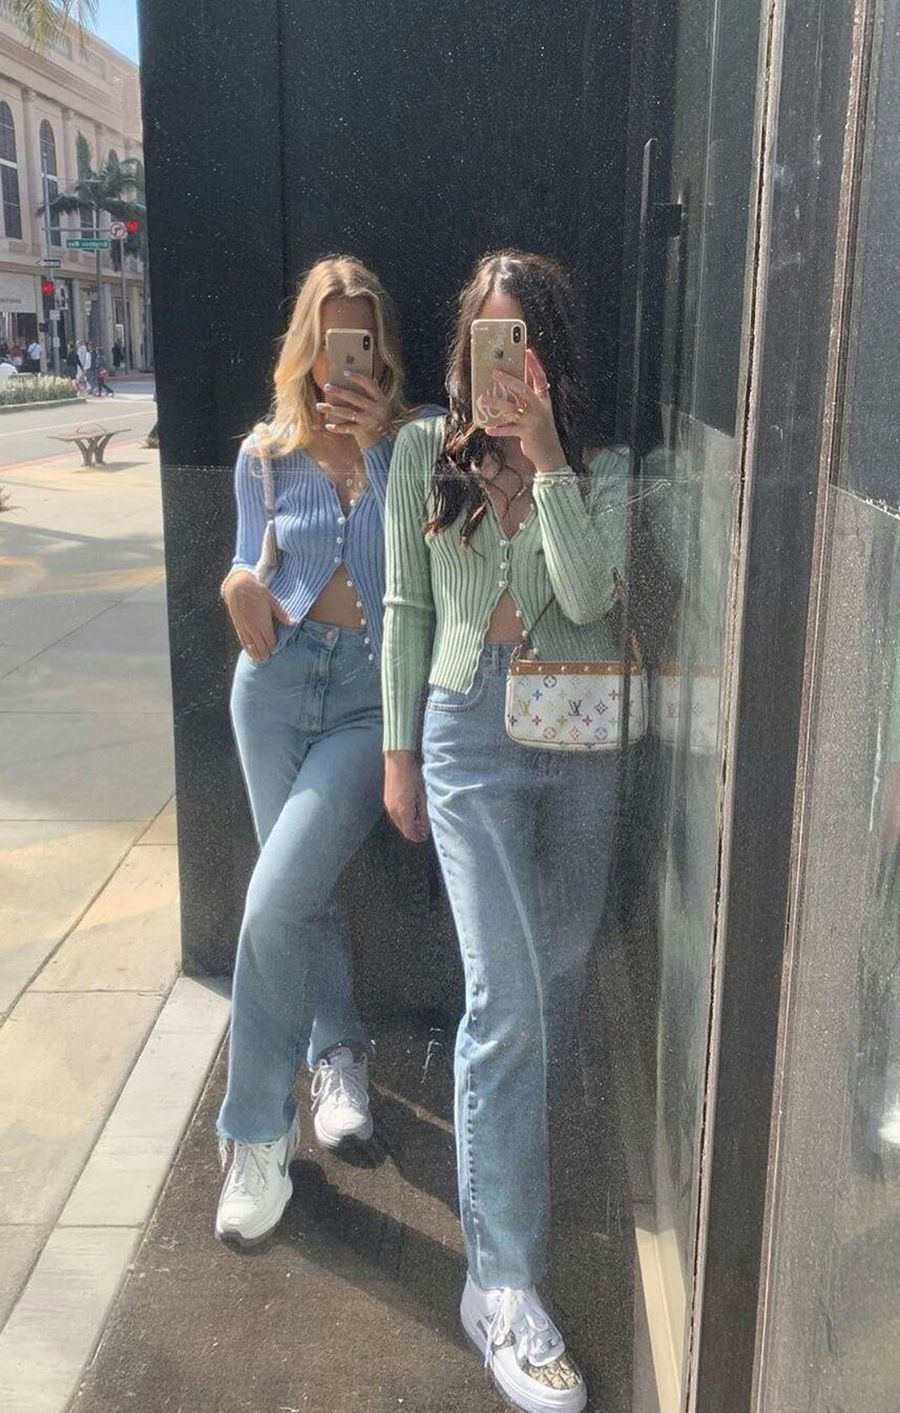 50 Ideas Y2K Outfits to Wear Now